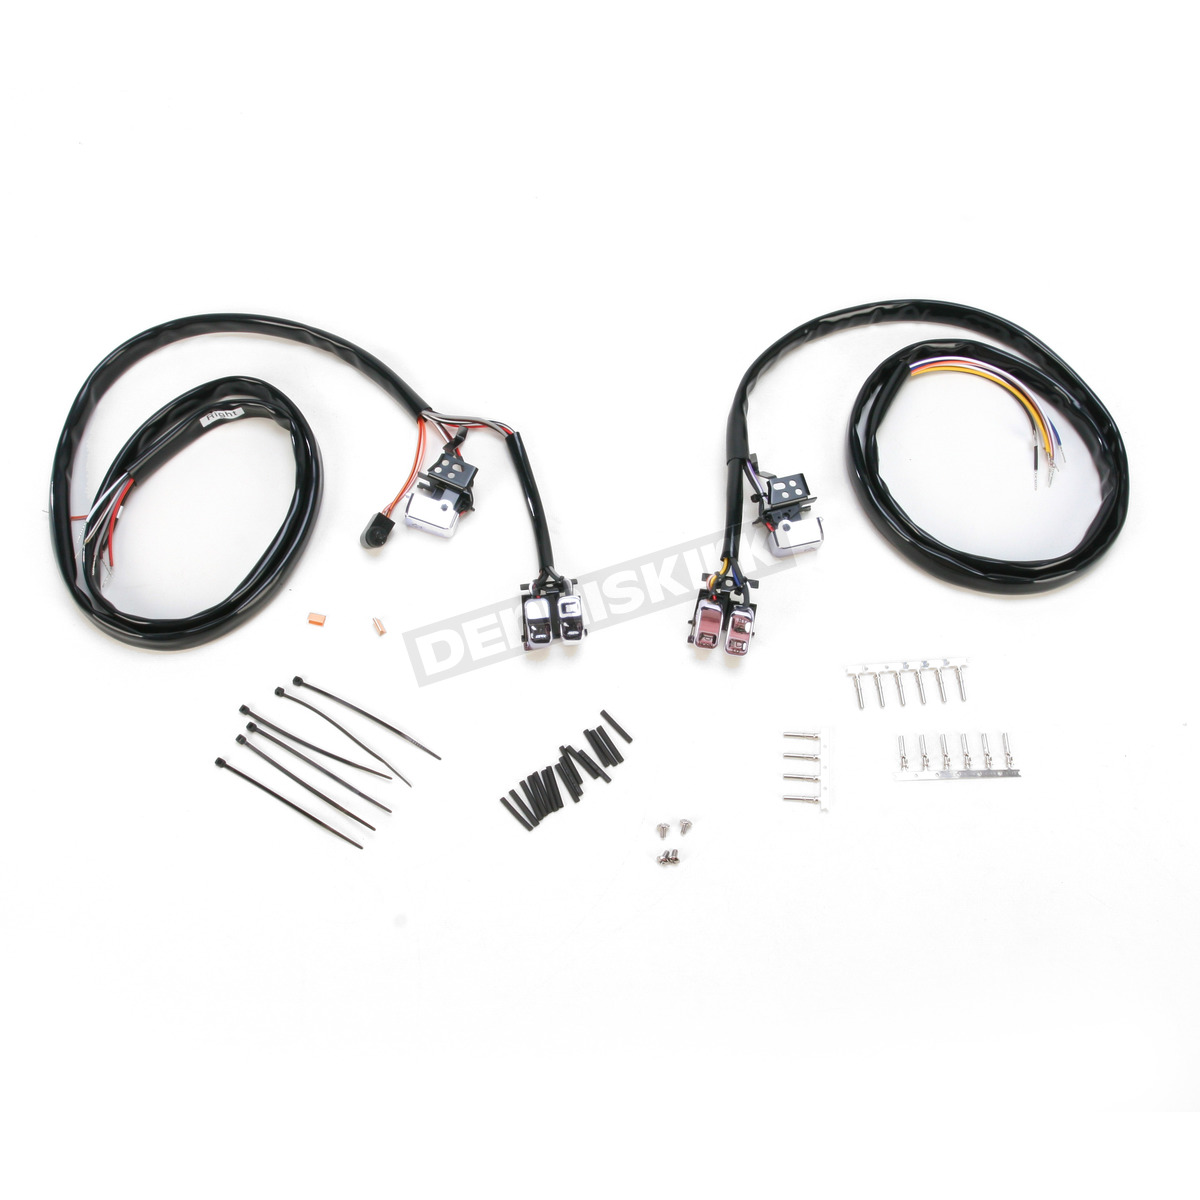 v-factor chrome l e d  handlebar switch wiring kit